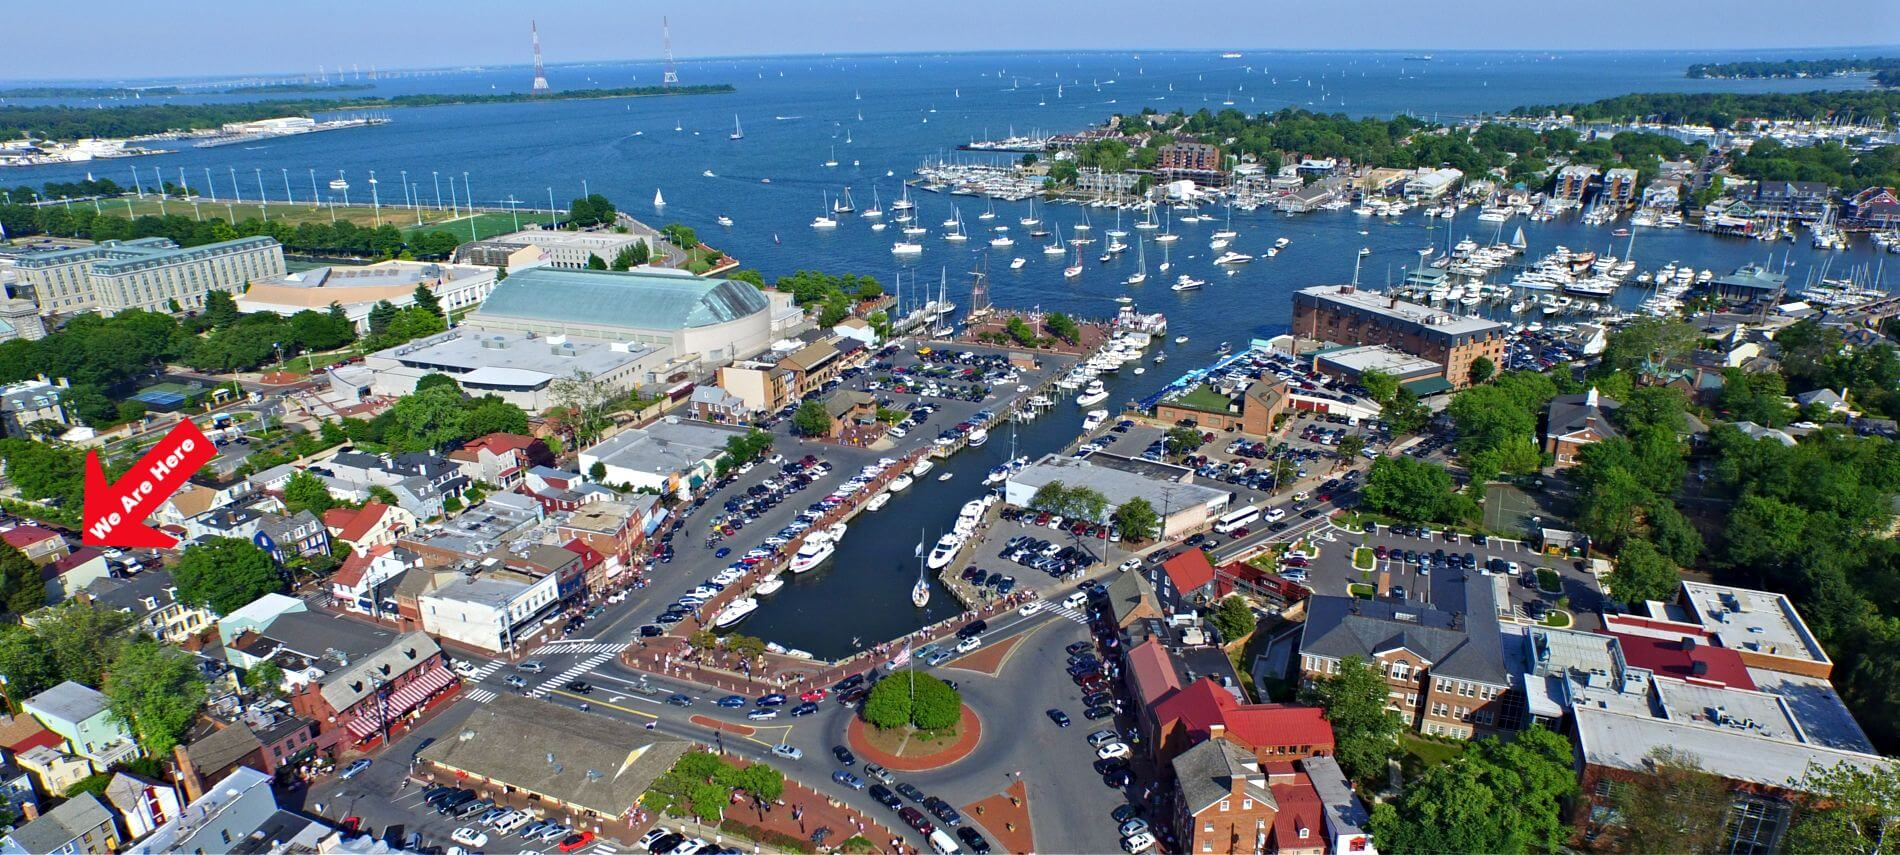 Aerial view of Annapolis with harbor and town